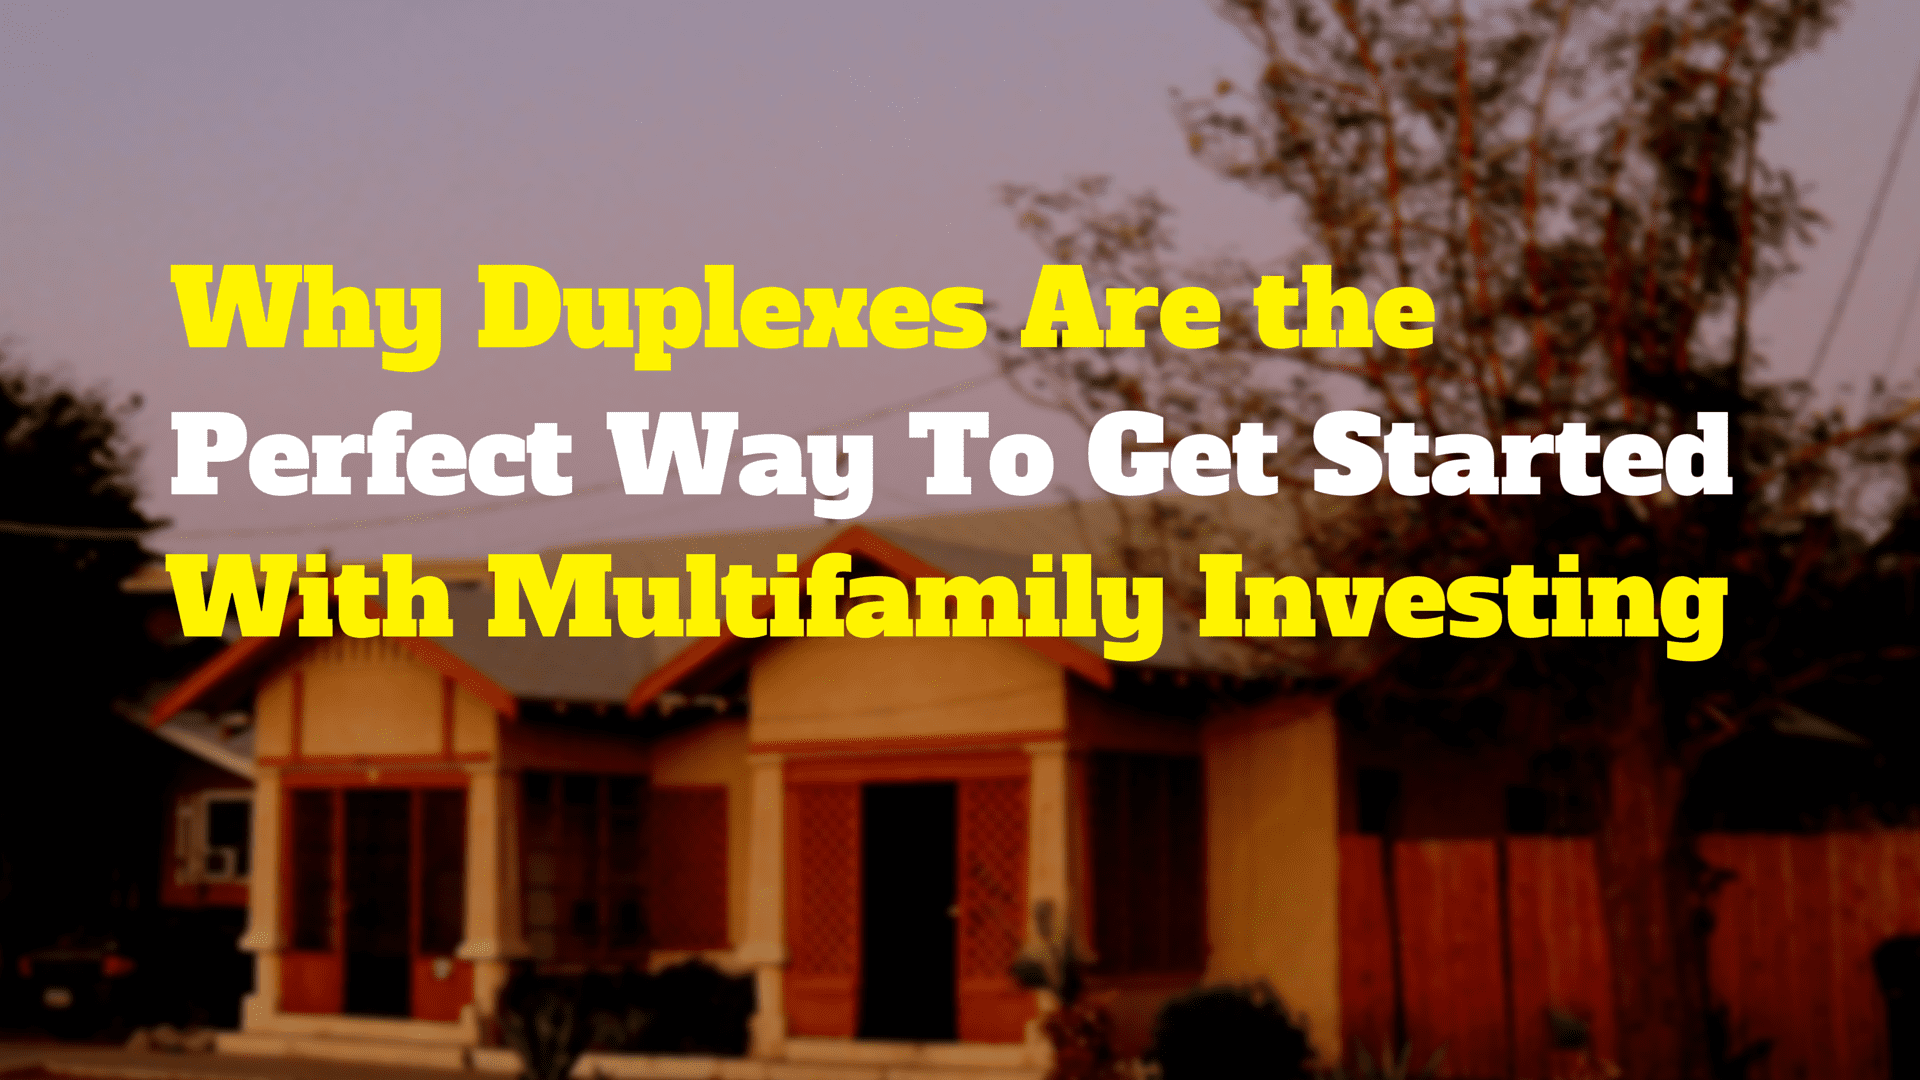 Why Duplexes Are The Perfect Way To Get Started With